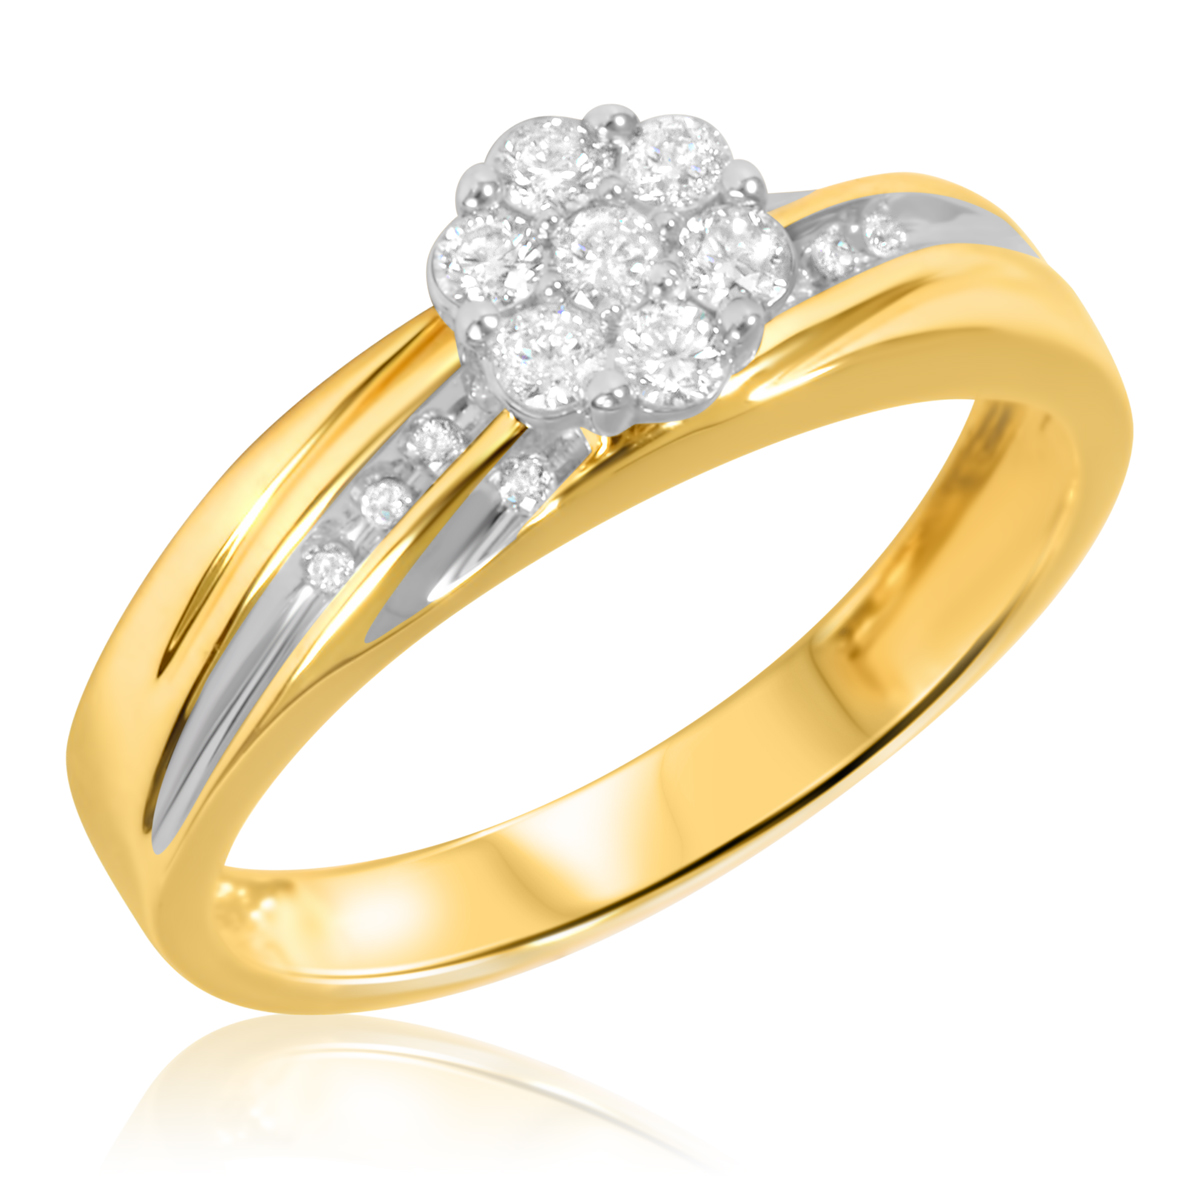 1 4 carat tw diamond ladies39 engagement ring 10k yellow With ladies wedding rings gold